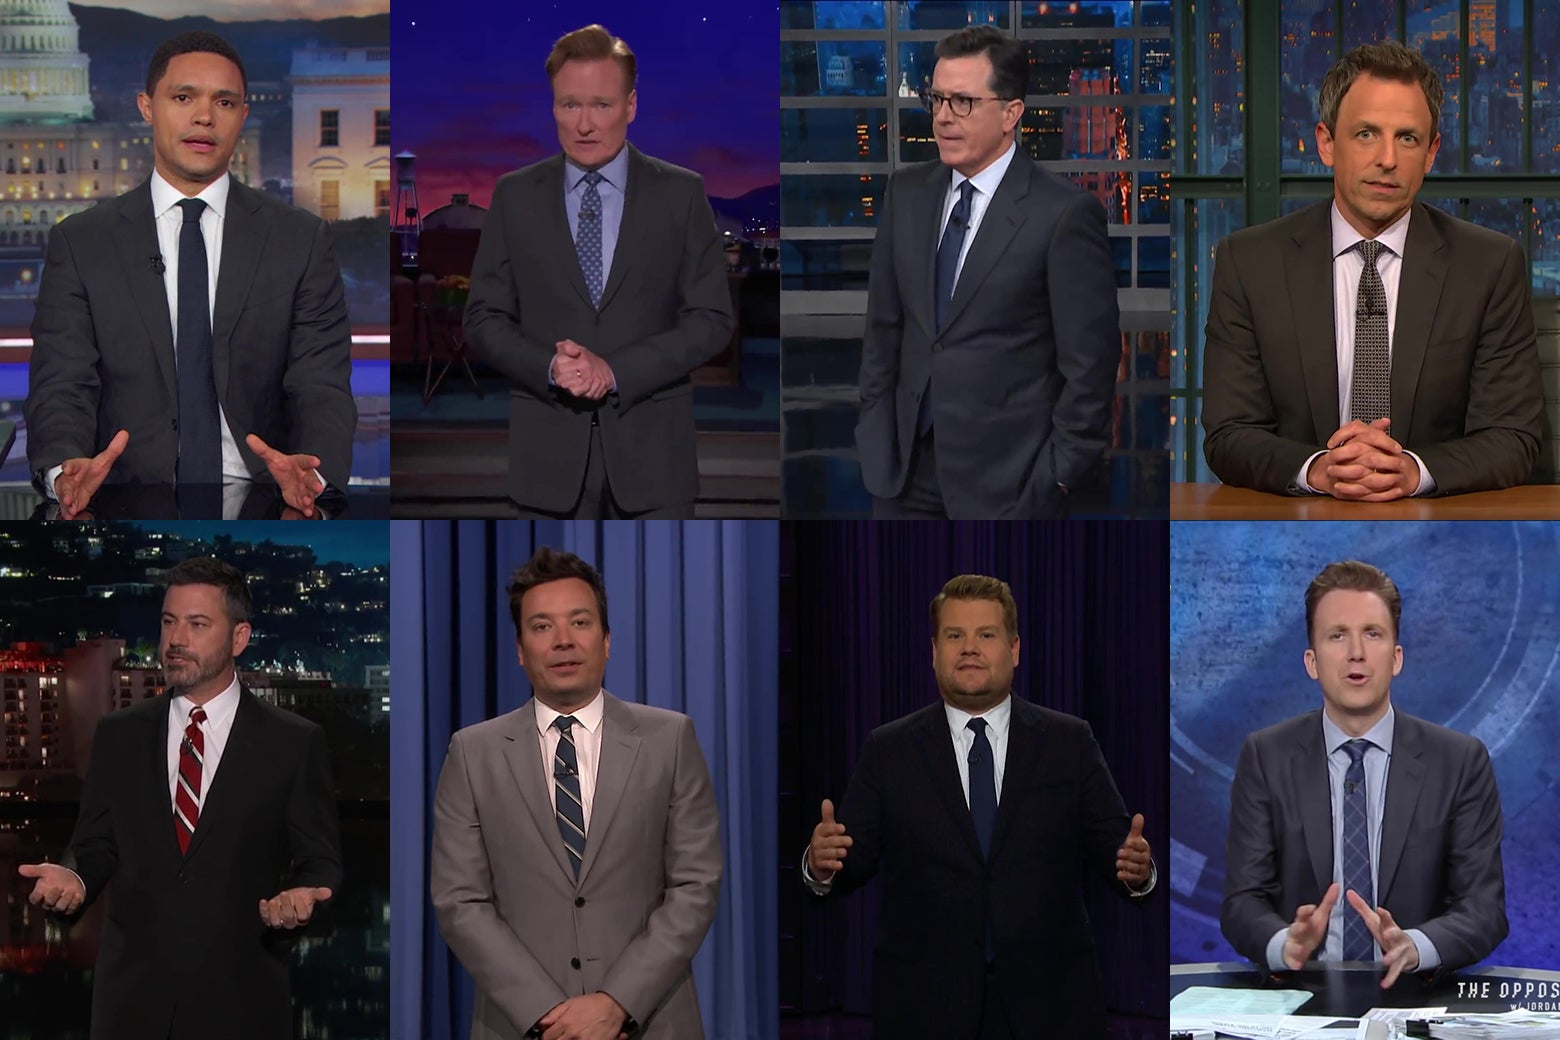 Late night hosts Trevor Noah, Conan O'Brien, Stephen Colbert, Seth Meyers, Jimmy Kimmel, Jimmy Fallon, James Corden, and Jordan Klepper.